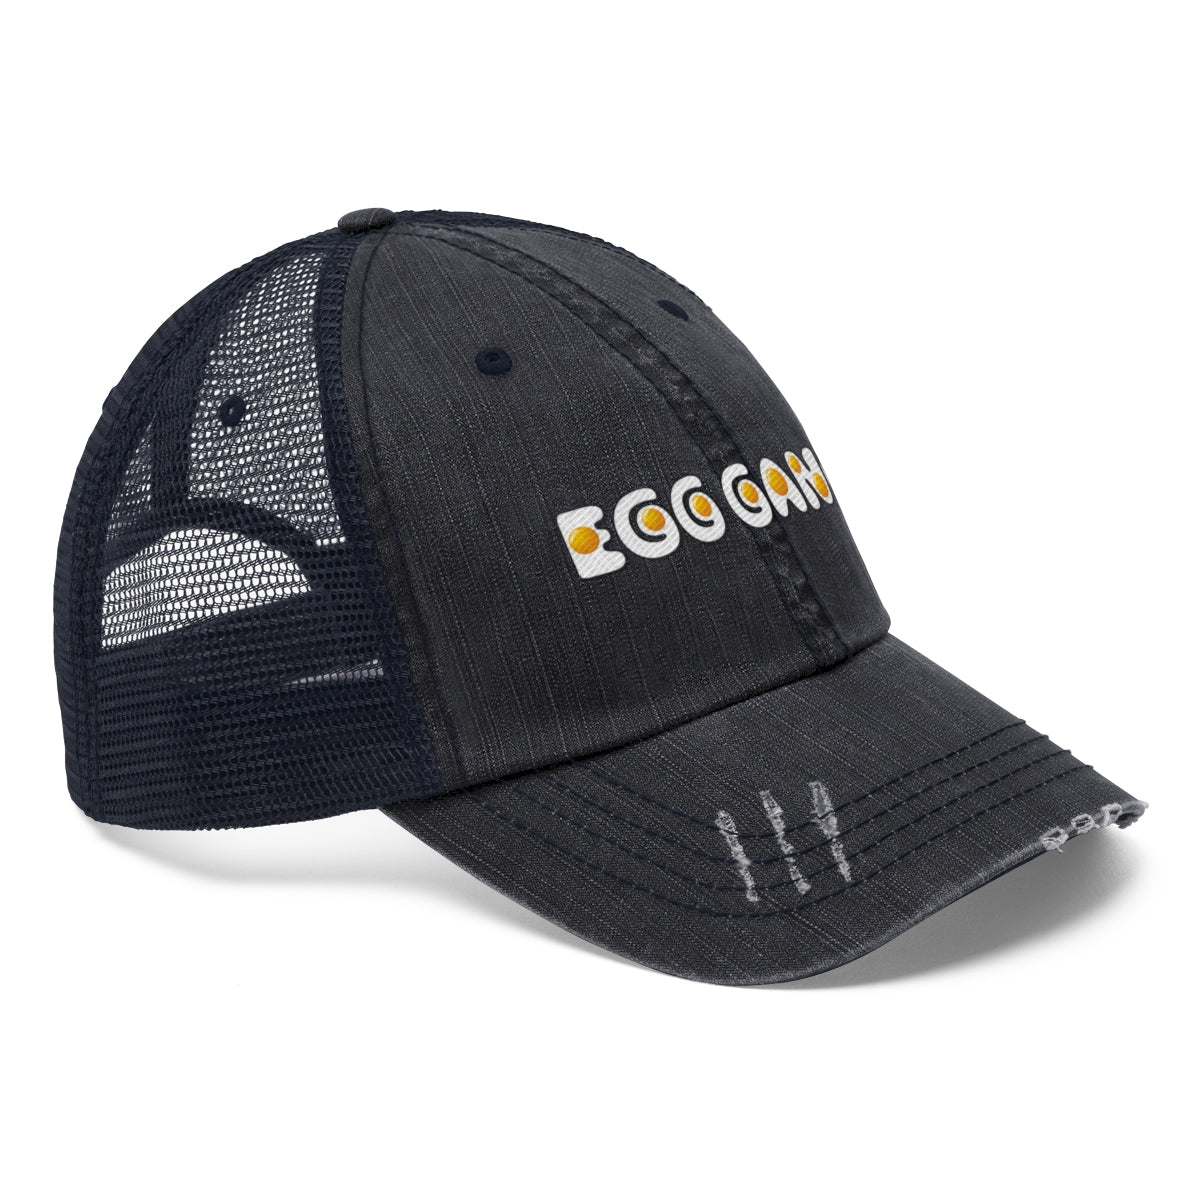 Egg Gang Unisex Egg Nest Mesh Trucker Hat